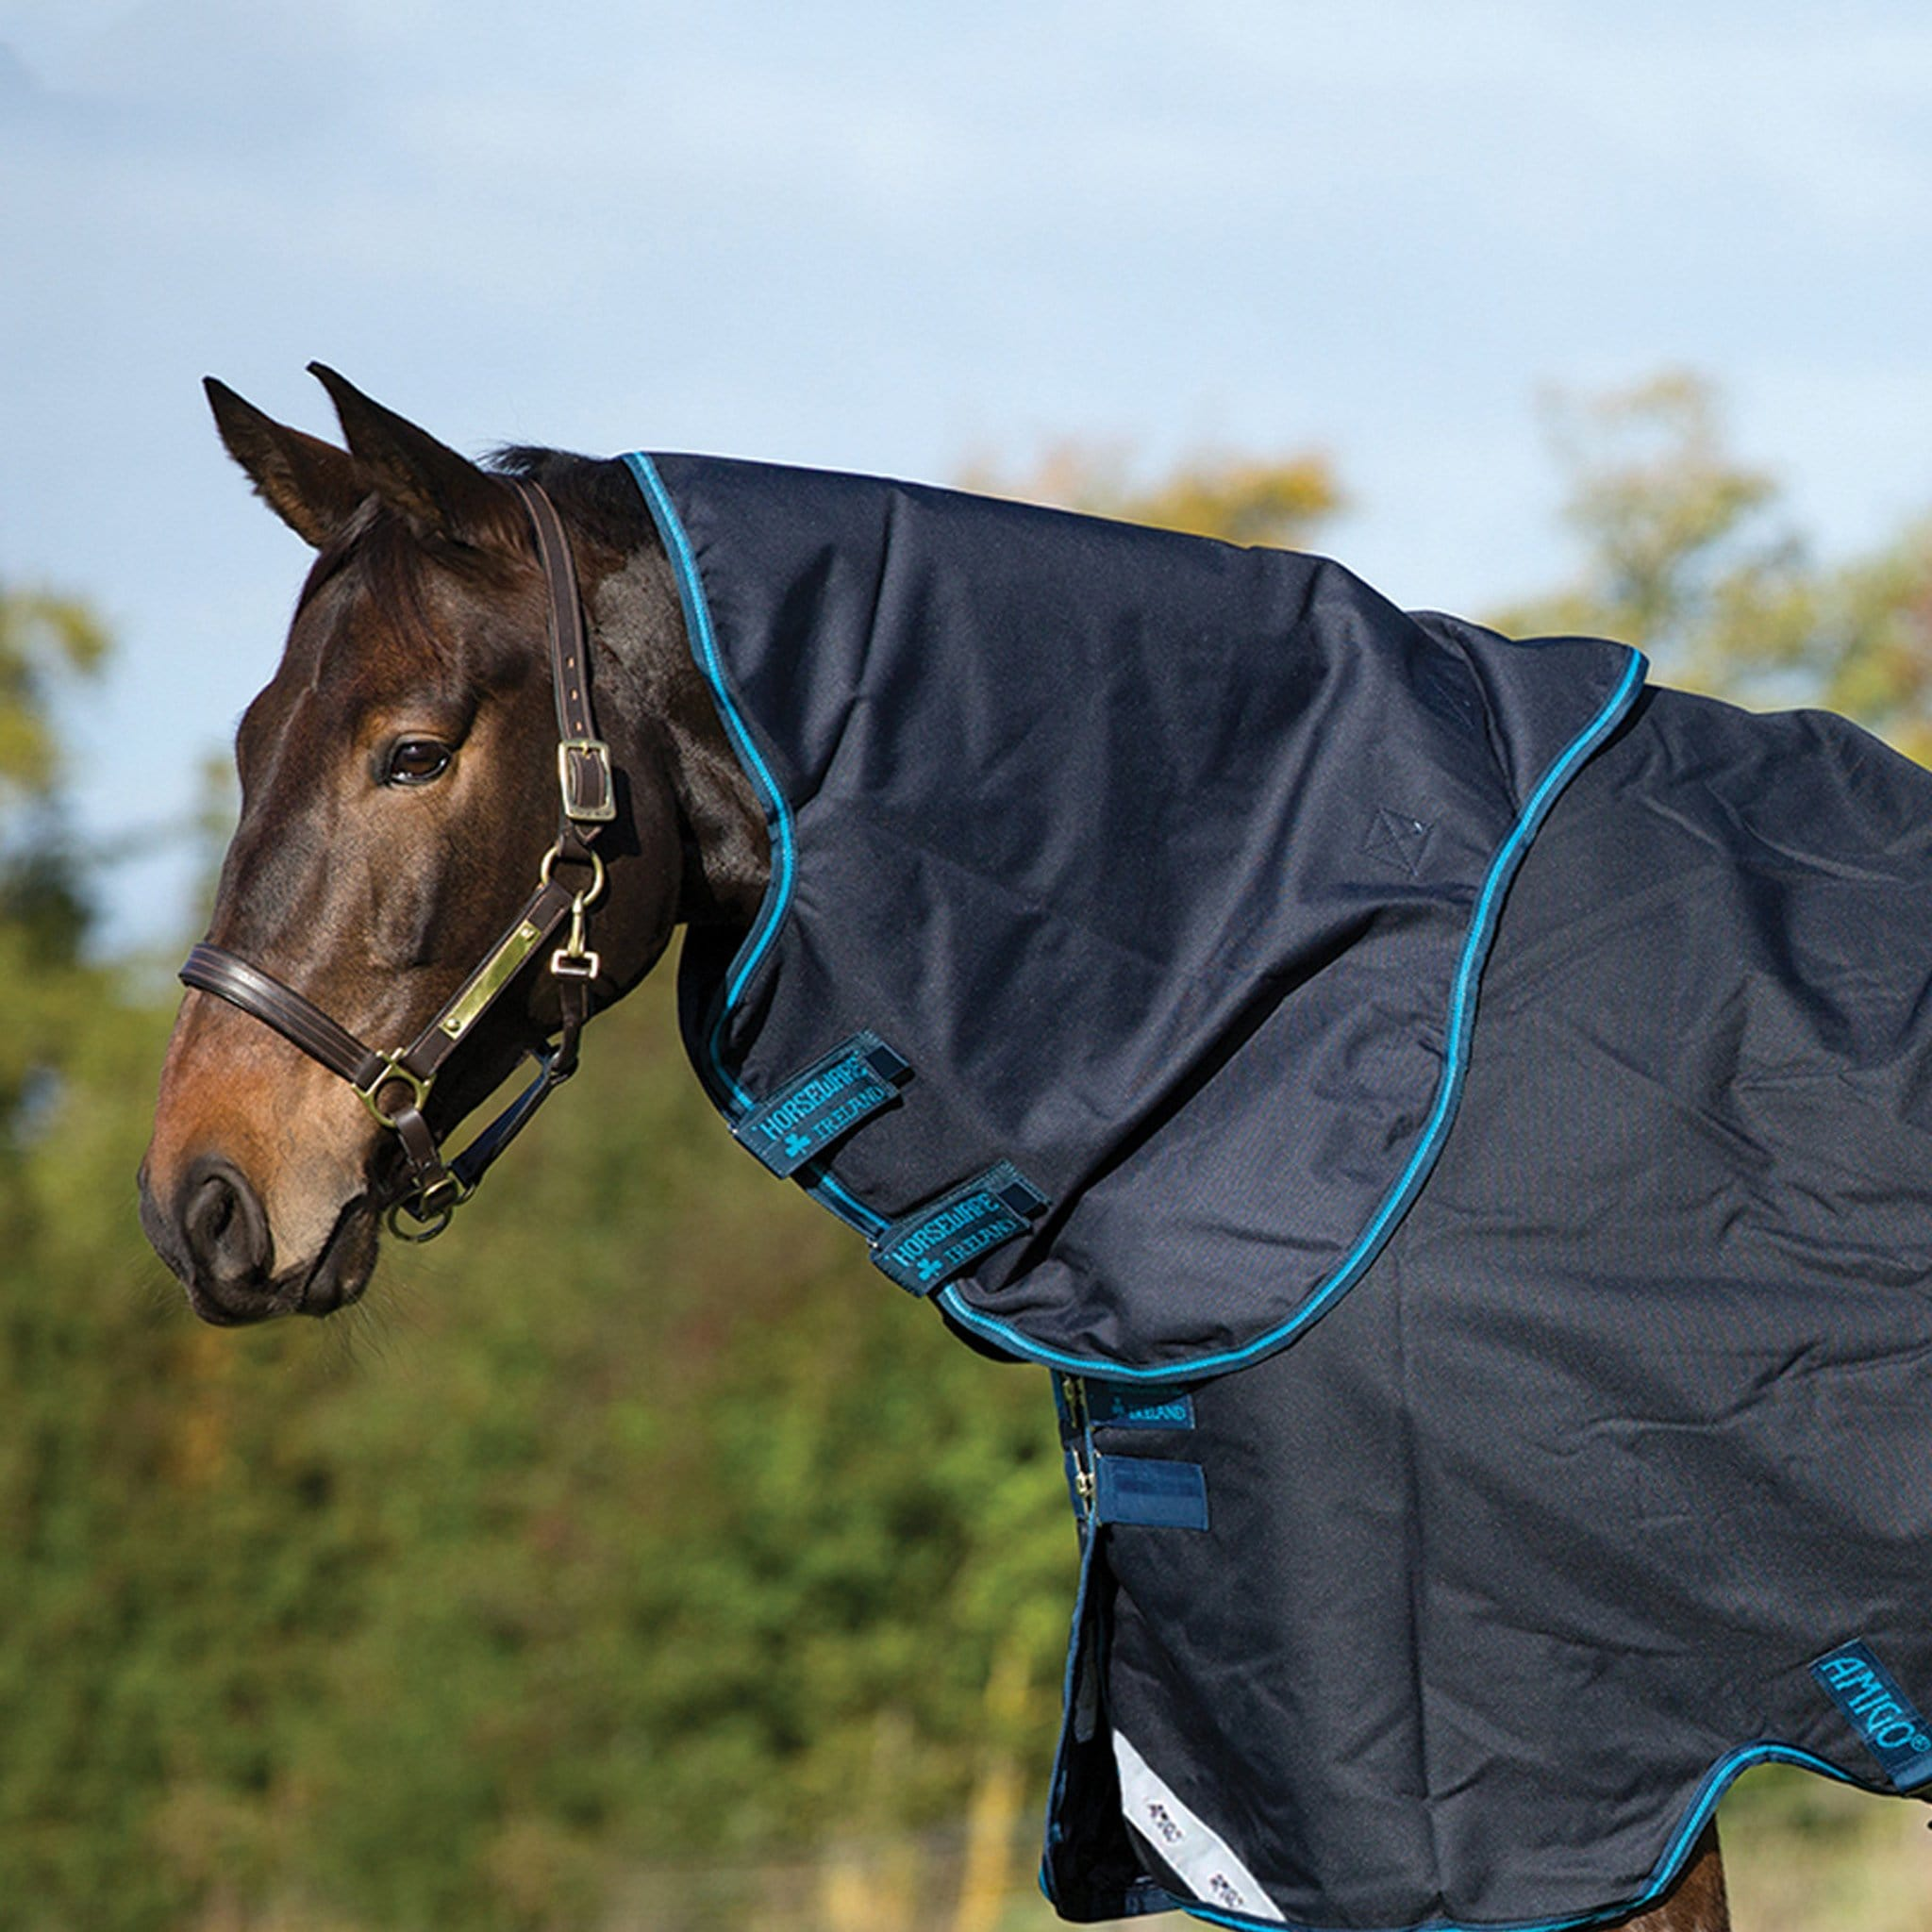 Horseware Amigo Bravo 12 Original 0g Hood Navy and Electric Blue AARN41